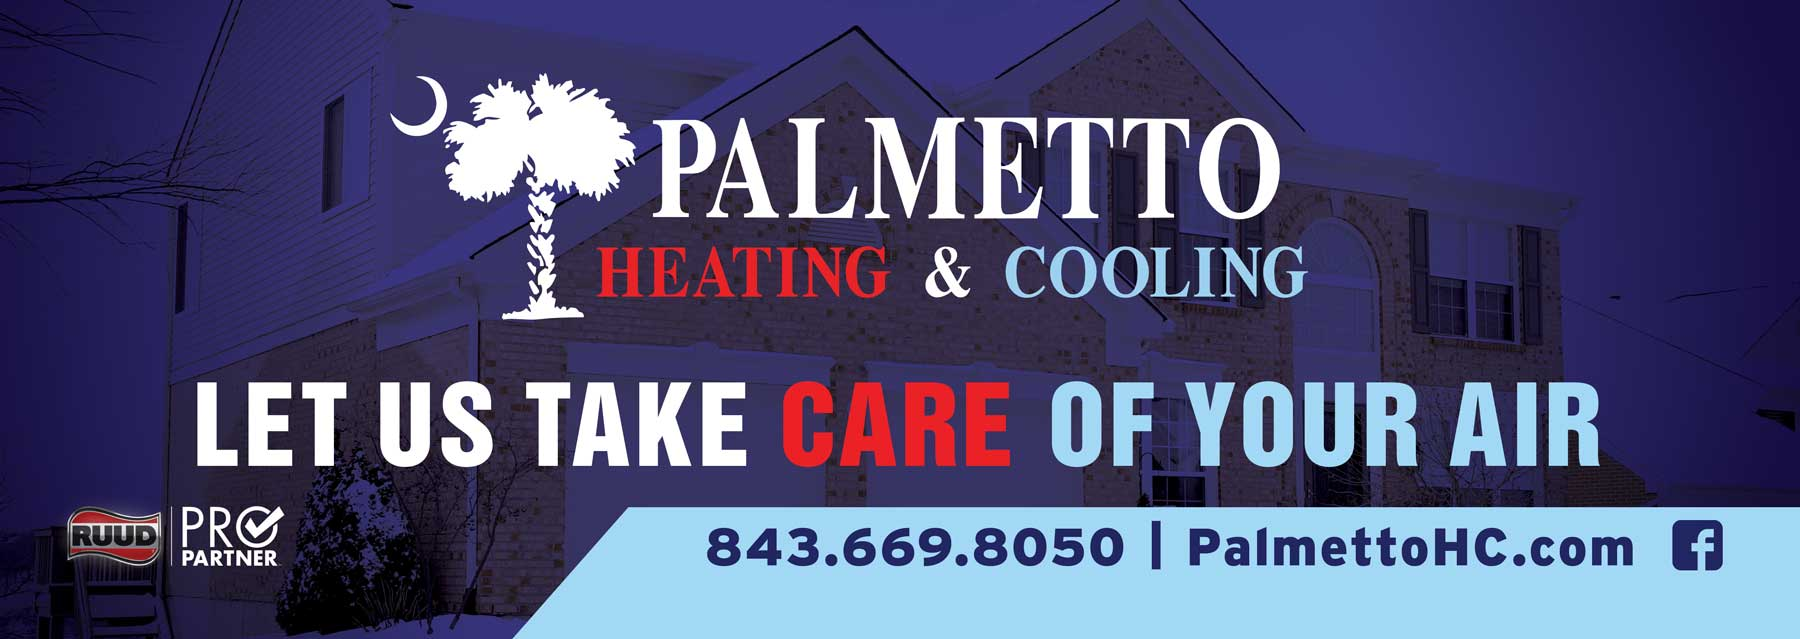 Palmetto Heating Amp Cooling Llc Florence Sc